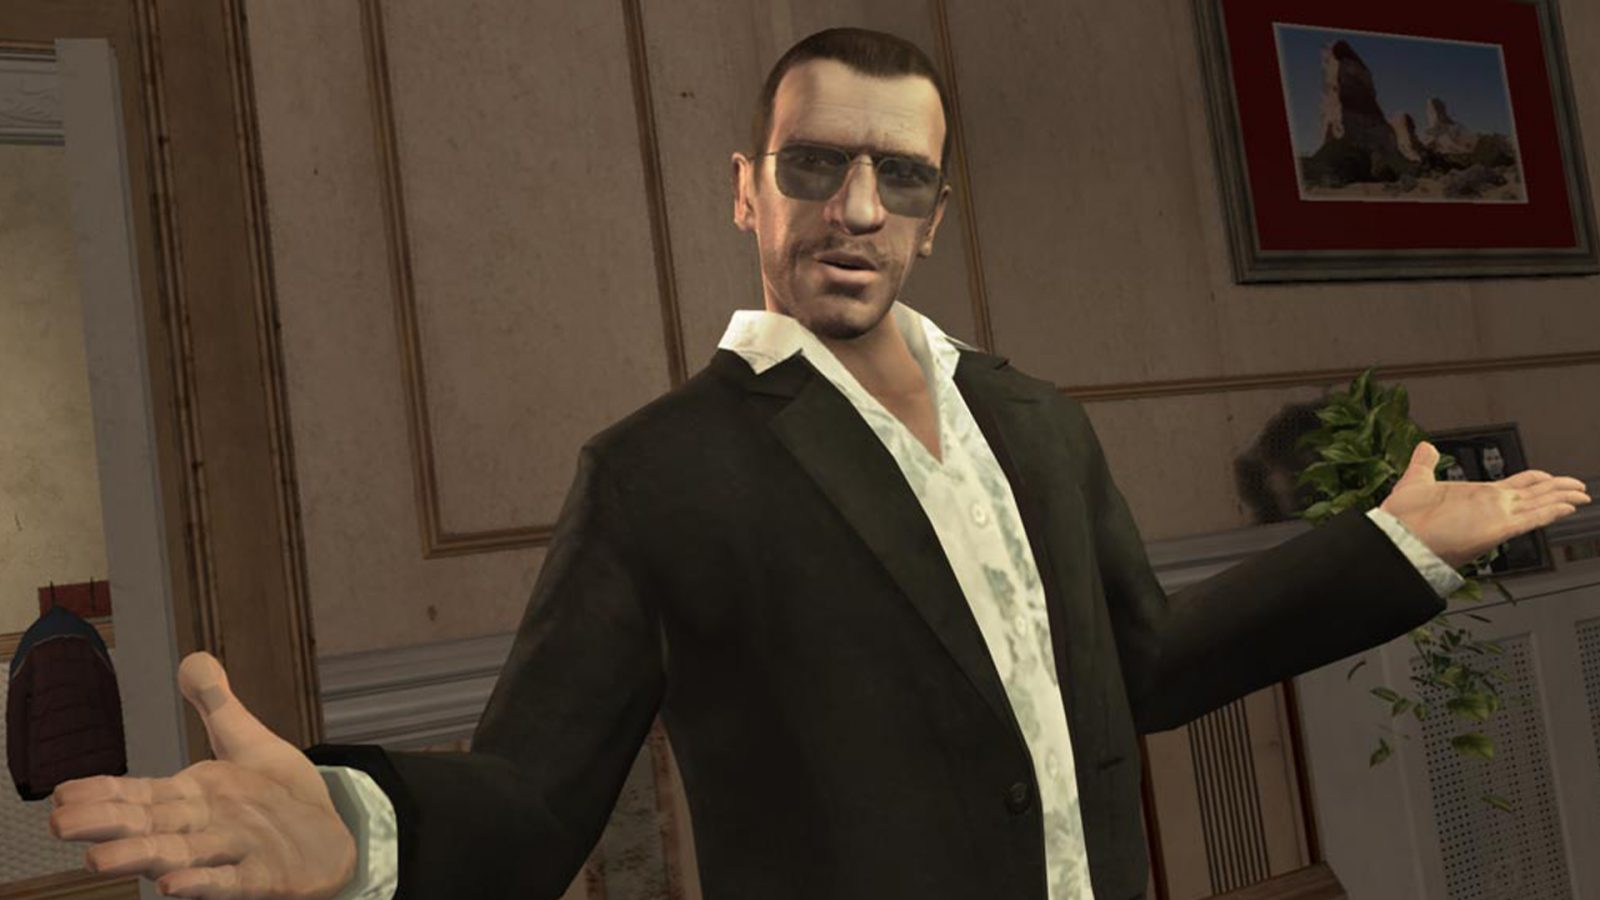 You possibly can not purchase Grand Theft Auto IV on Steam